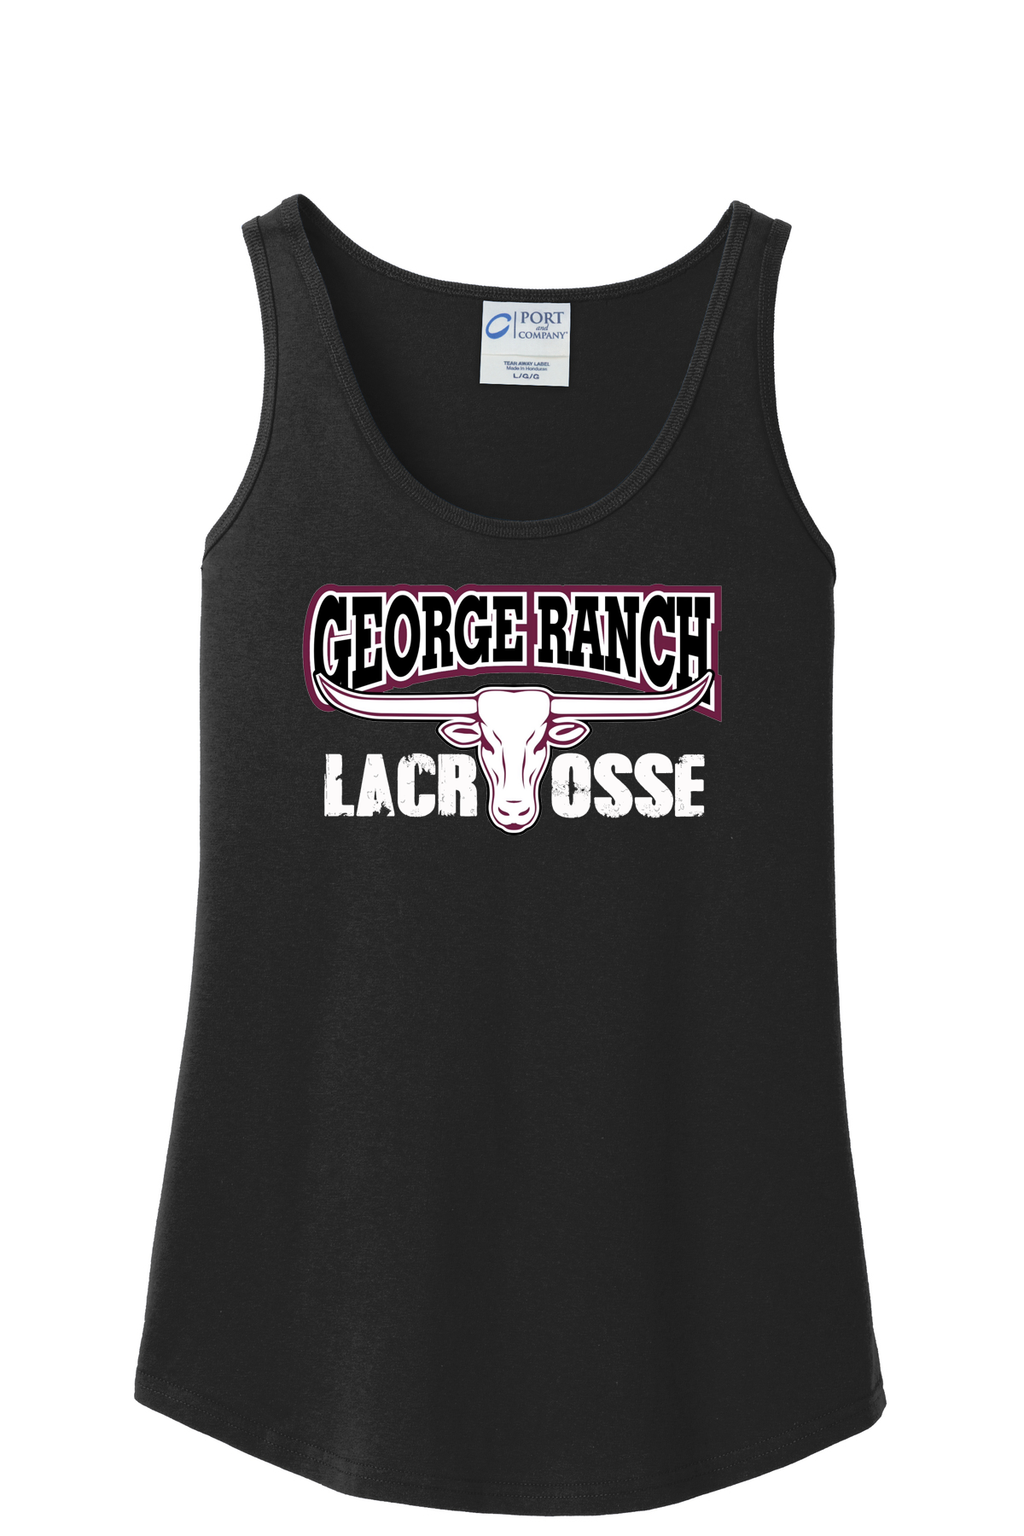 GR Longhorns Lacrosse Women's Tank Top